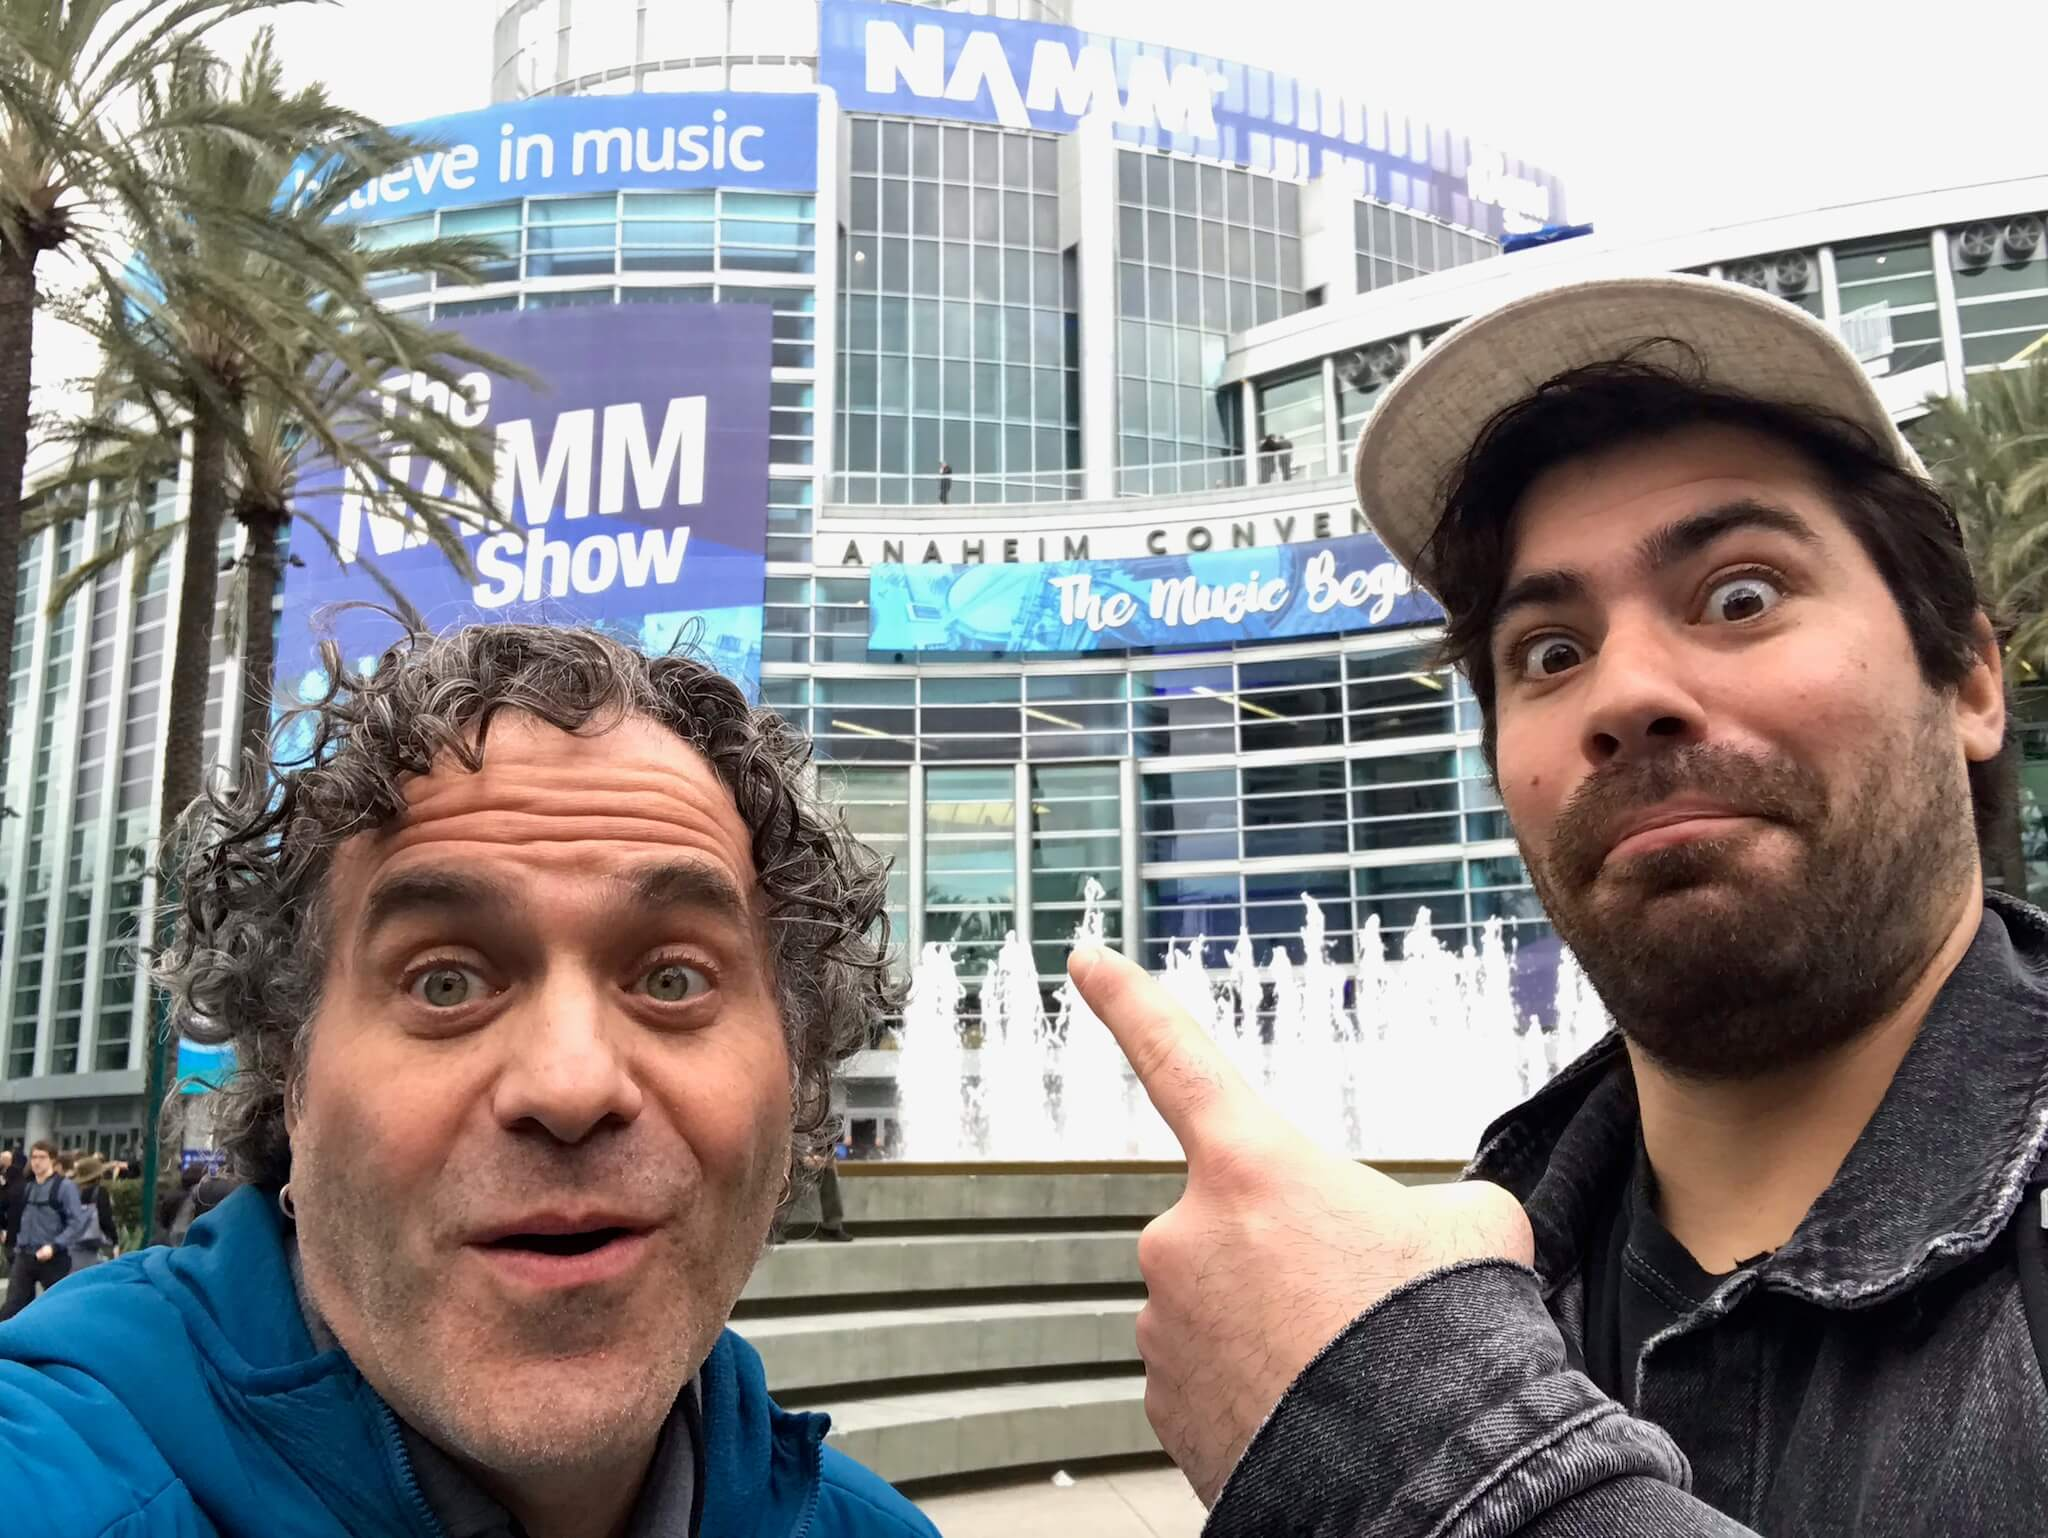 Dmitri Vietze and Jade Prieboy posing at NAMM Show 2020, where they hosted a flash Music Technology meetup and recorded podcast interviews with innovative music tech companies KORG, Moog, AVID, Antares, and more!